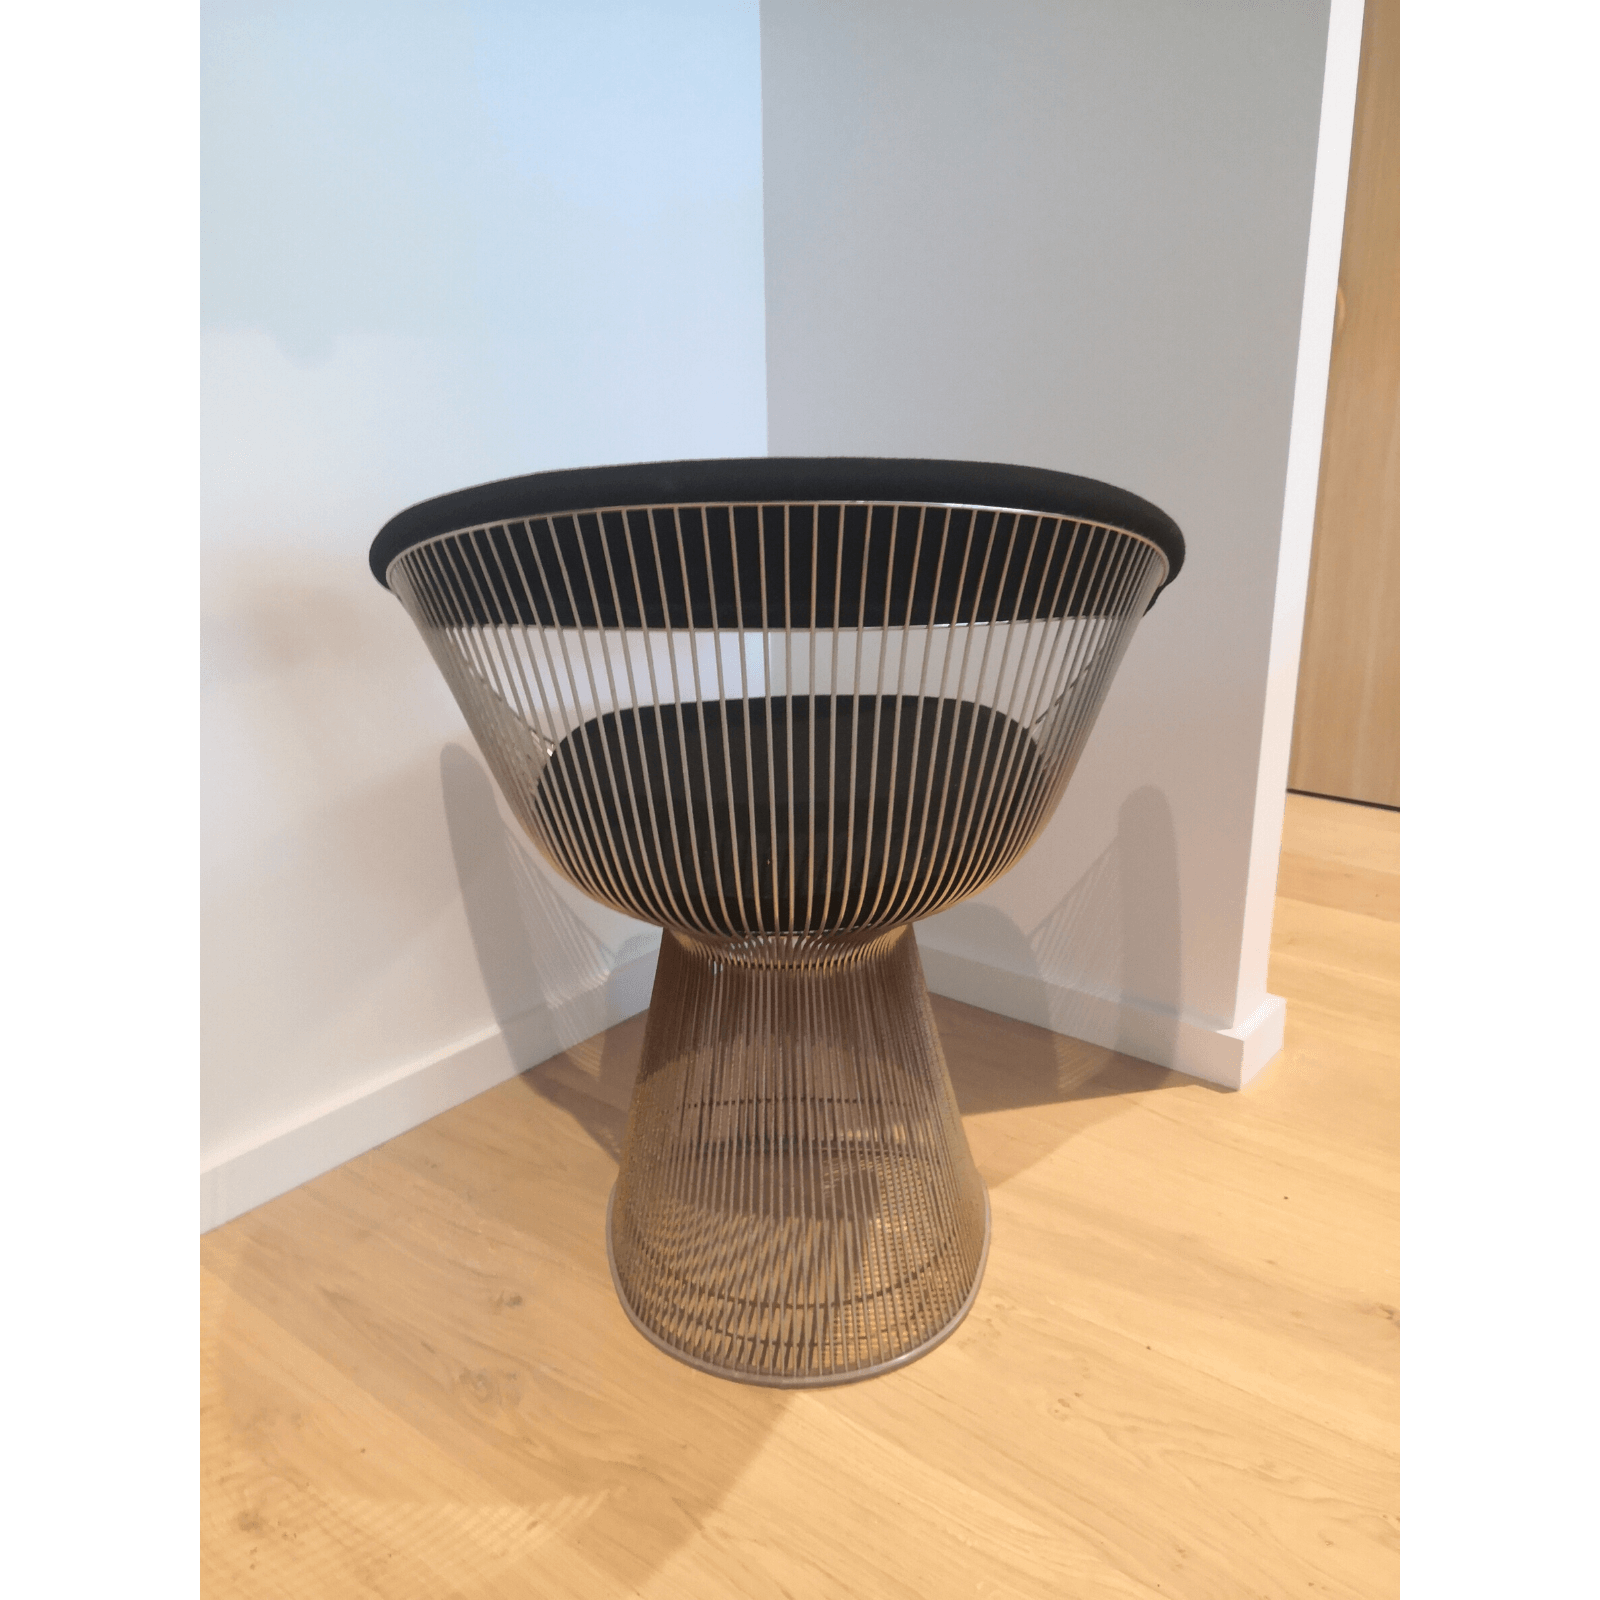 Two Design Lovers Platner Dining Chair & Table 4